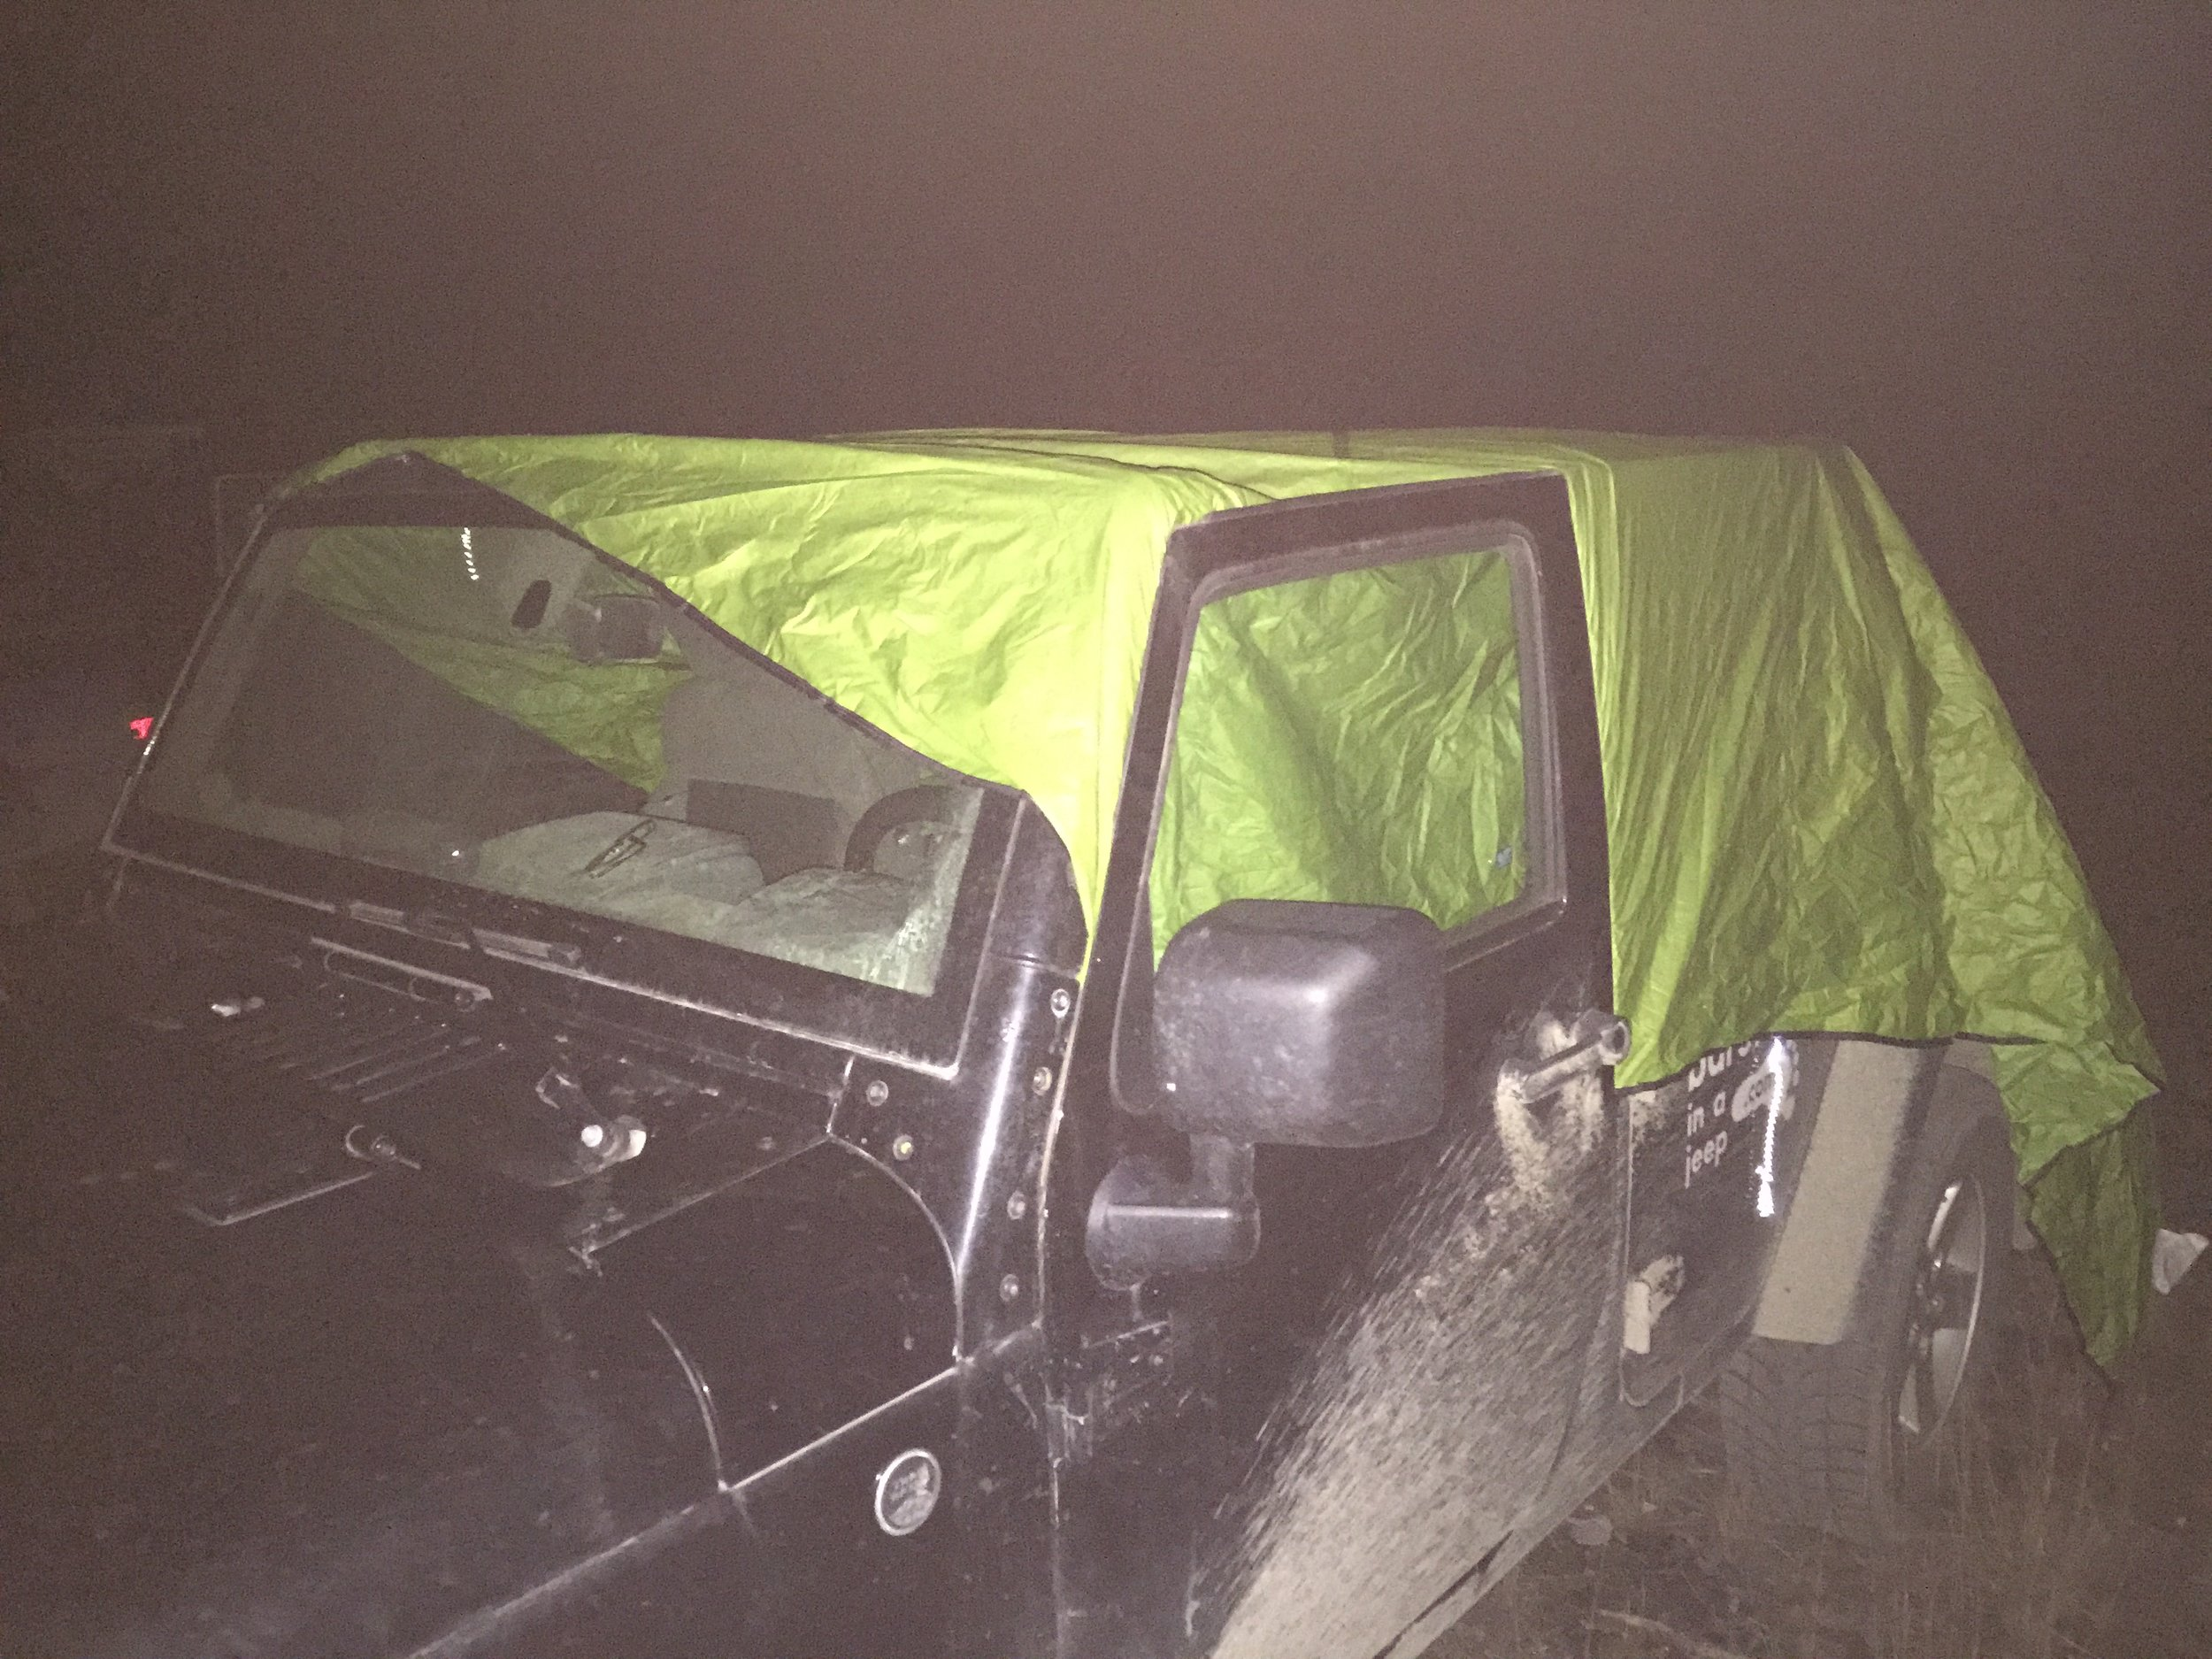 I had left my roof at a friend's place, 200 kilometres away. One thing led to the other and I decided to camp with some friends in a remote part of northern Canada. My friend had a weatherproof canvas: we made a makeshift roof for the Jeep and I had a comfortable night at the back of the Jeep.